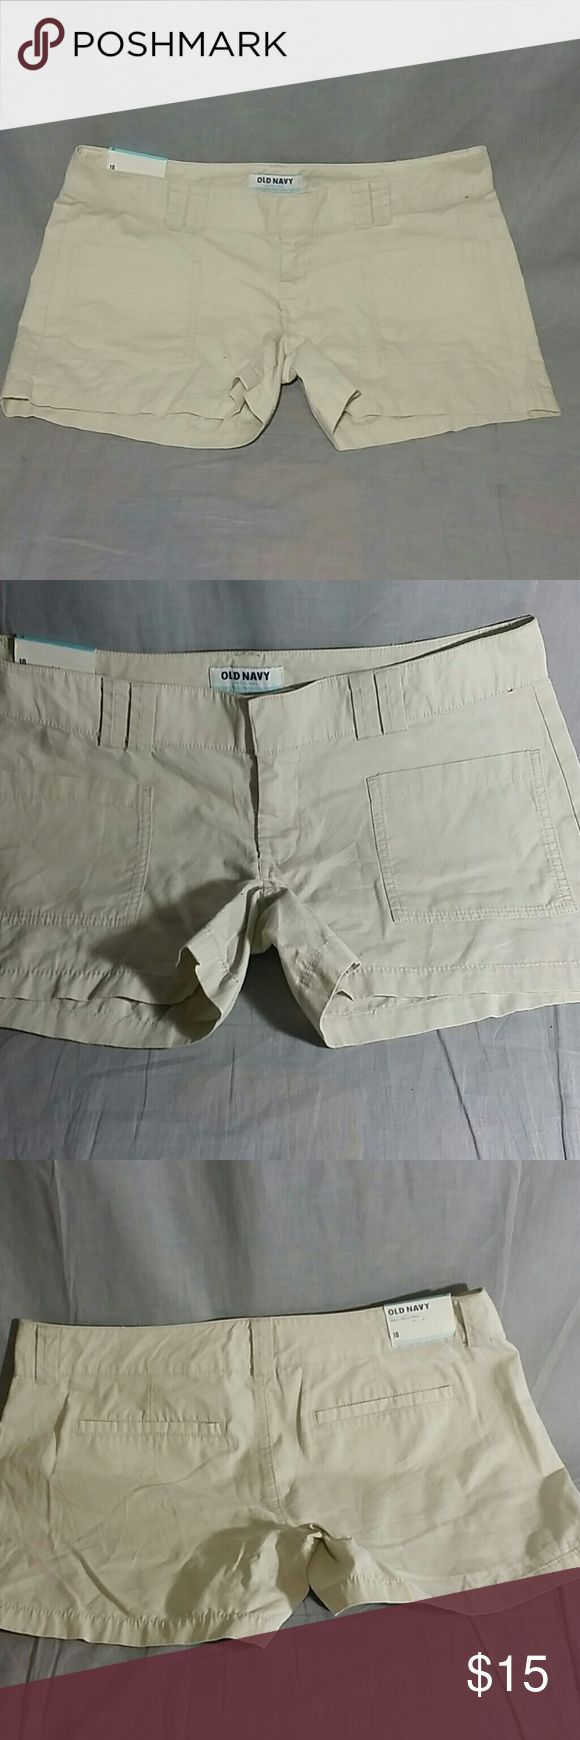 "Women's Old Navy Shorts Pants Ivory 10 NEW Women's shorts Pants Ivory Size 10 NEW 100% Cotton. Measurements WAIST 18"" TALL 12"" Old Navy Shorts Bermudas"